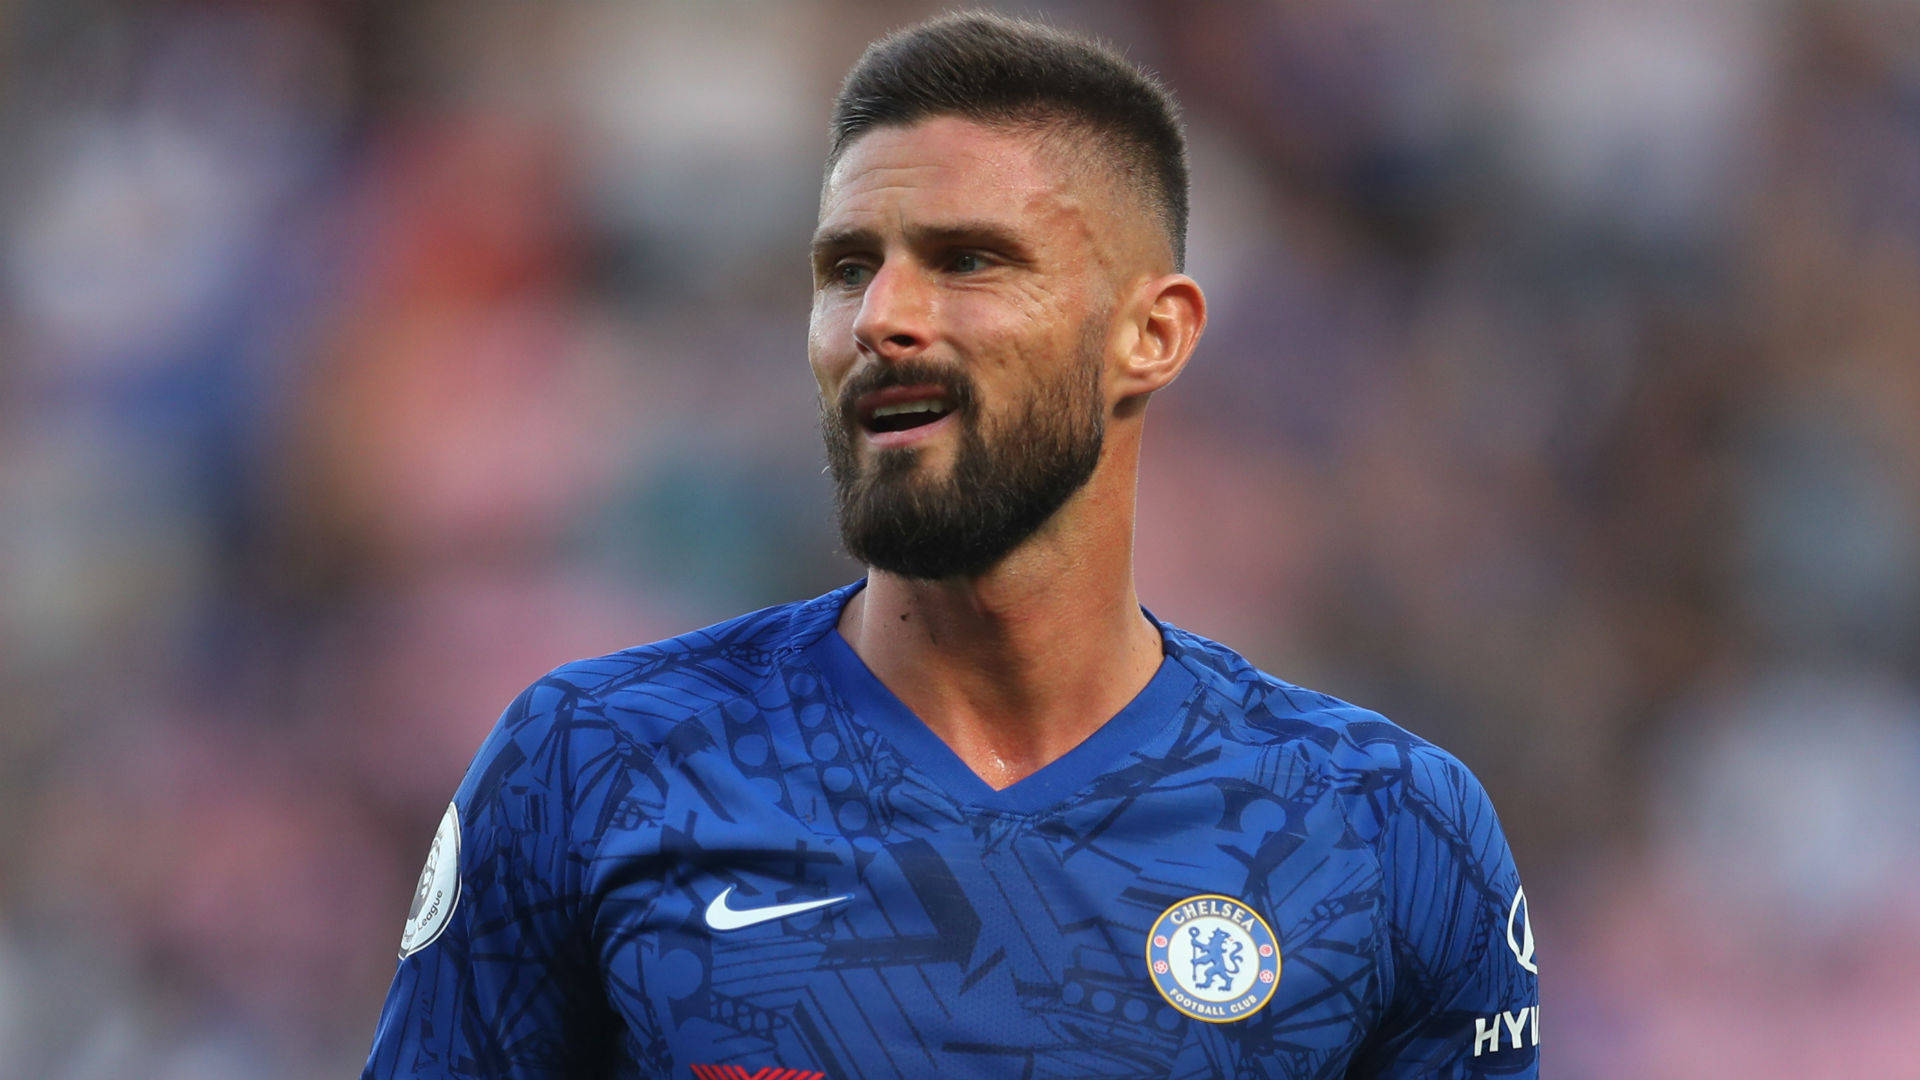 Frank Lampard left Olivier Giroud out of Chelsea's matchday squad to face Everton, who named Theo Walcott in their starting XI.